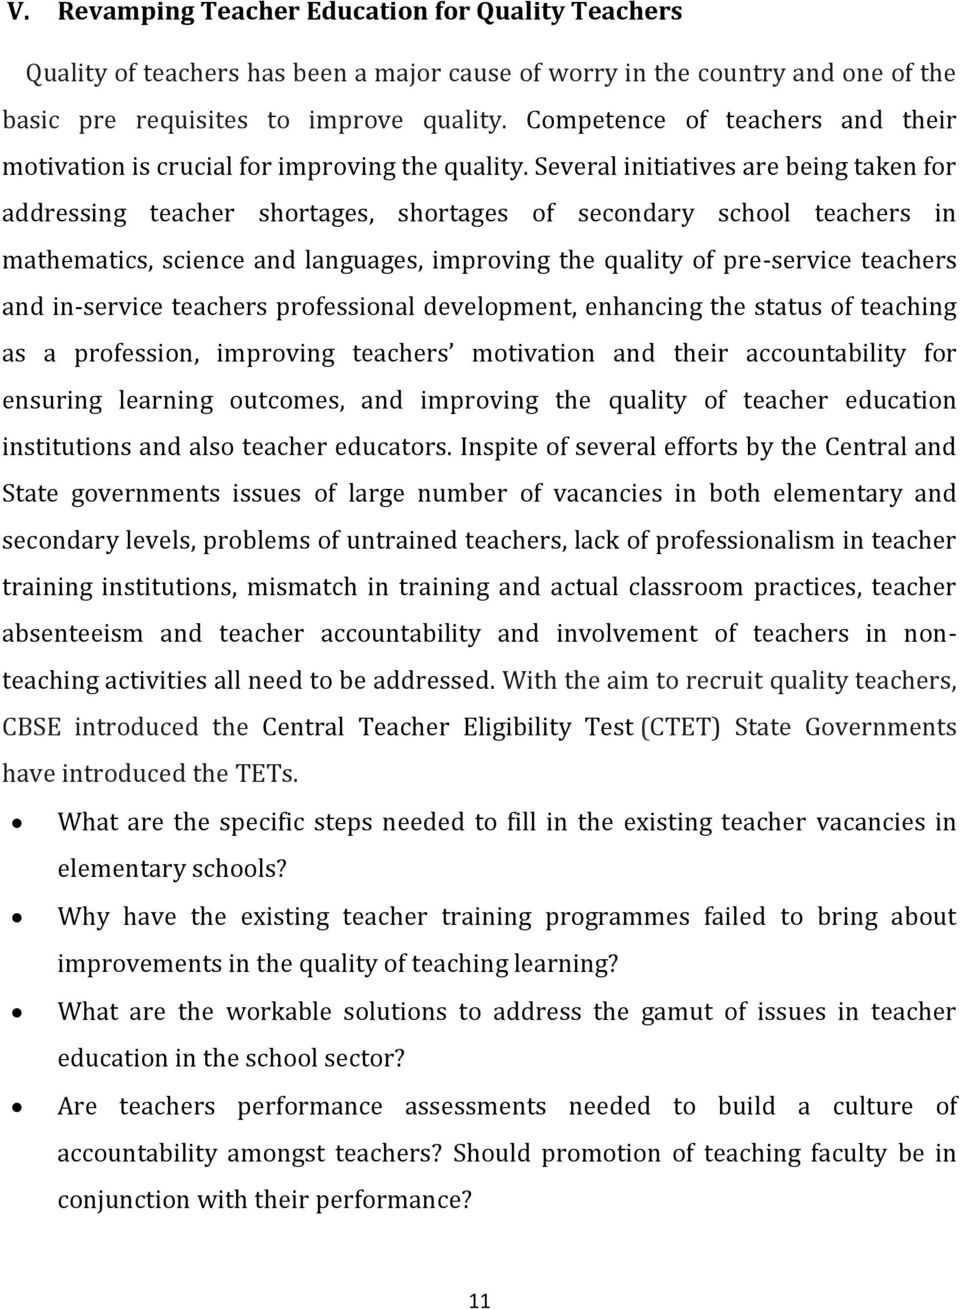 Several initiatives are being taken for addressing teacher shortages, shortages of secondary school teachers in mathematics, science and languages, improving the quality of pre-service teachers and